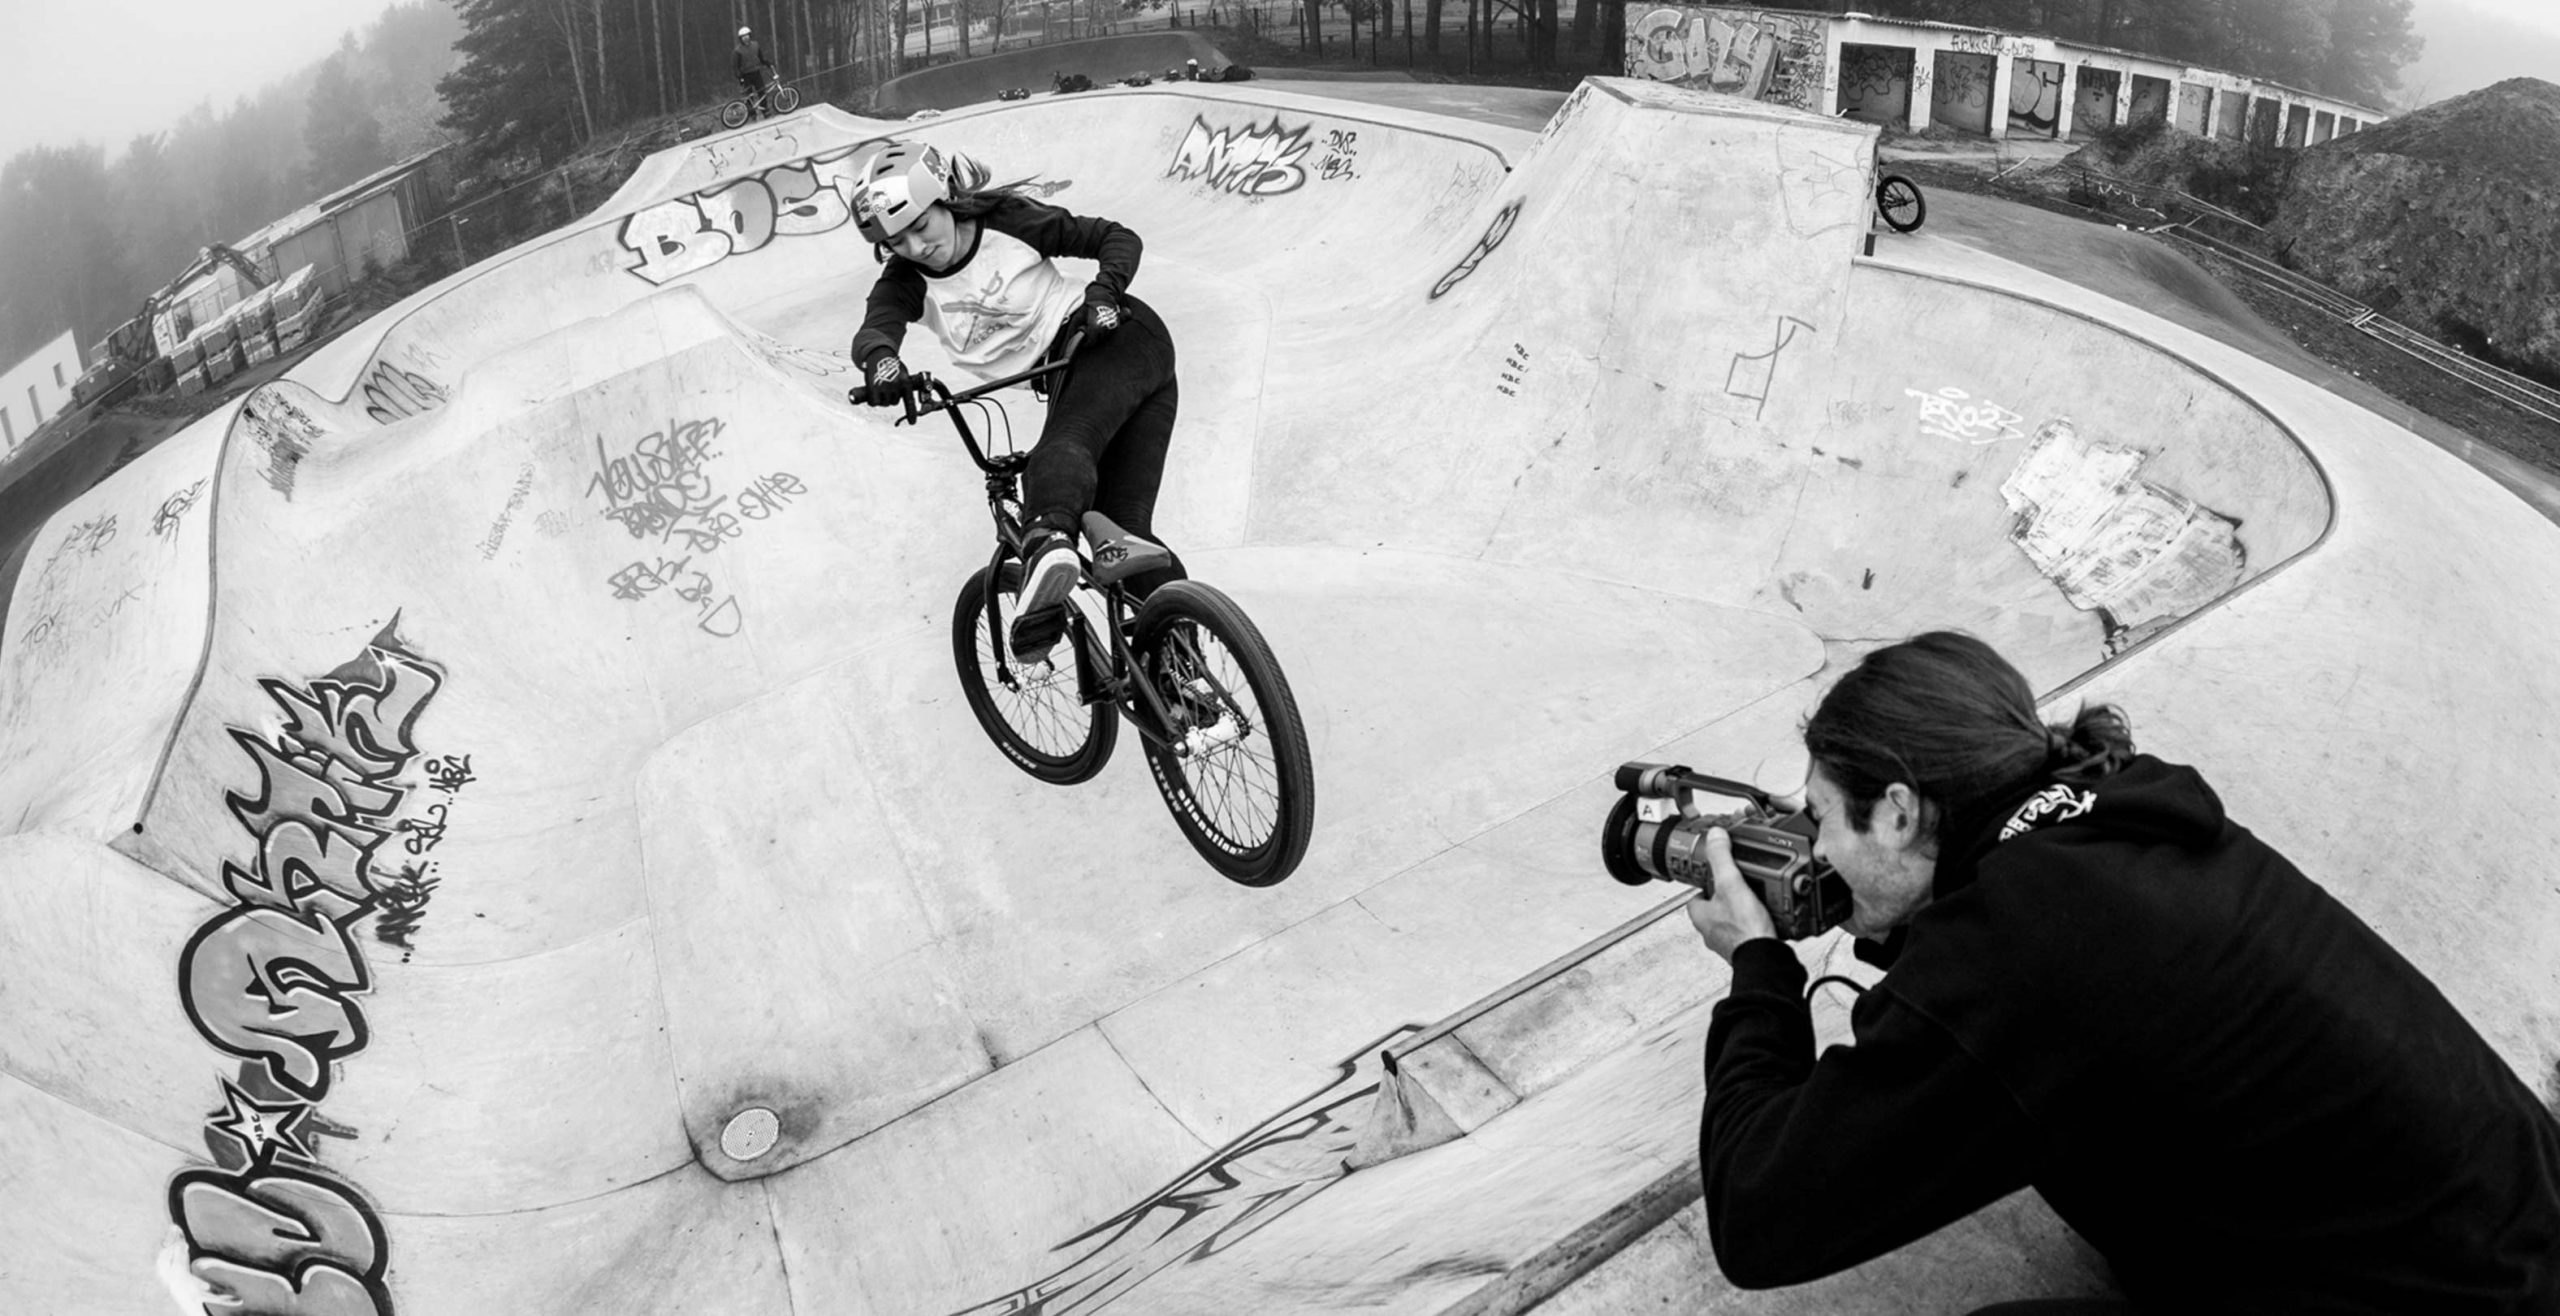 Lara Lessmann bmx beyond your daily routine